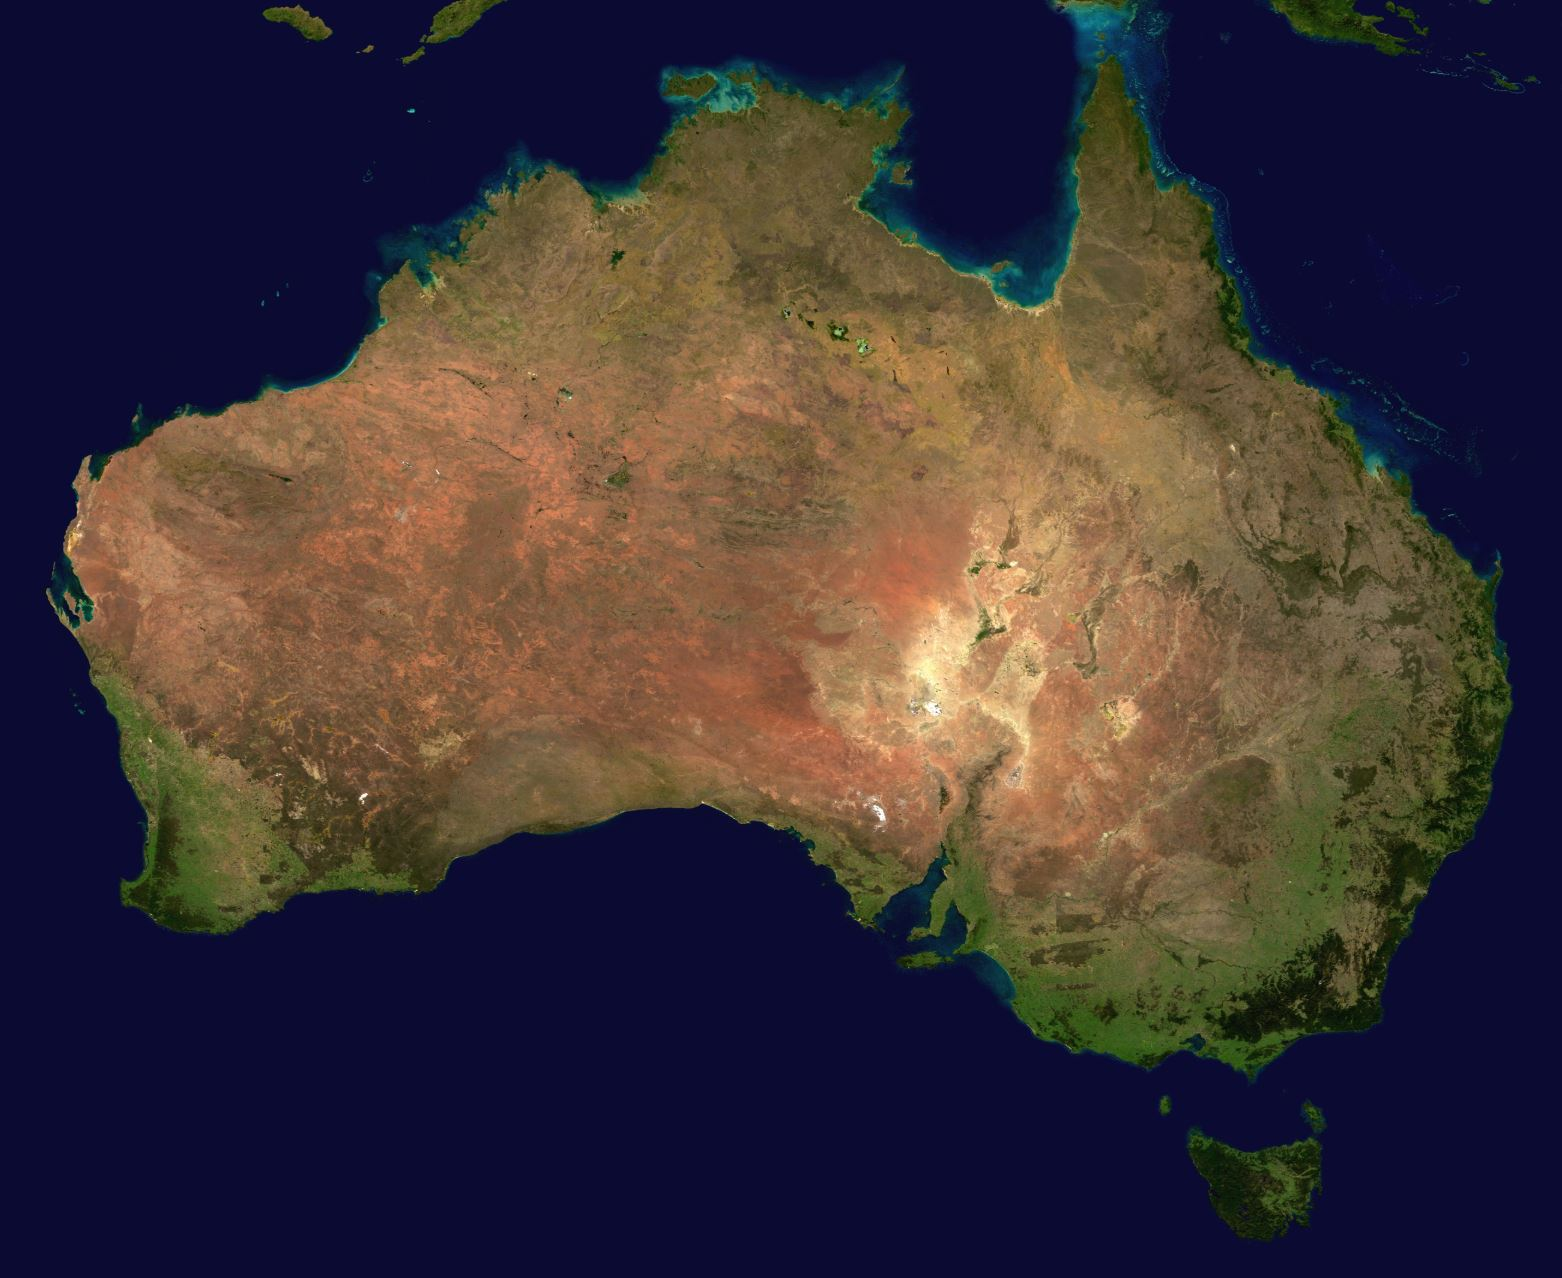 Australia from space - Image Credit:  Reto Stöckl / NASA Goddard Space Flight Center via Wikimedia Commons